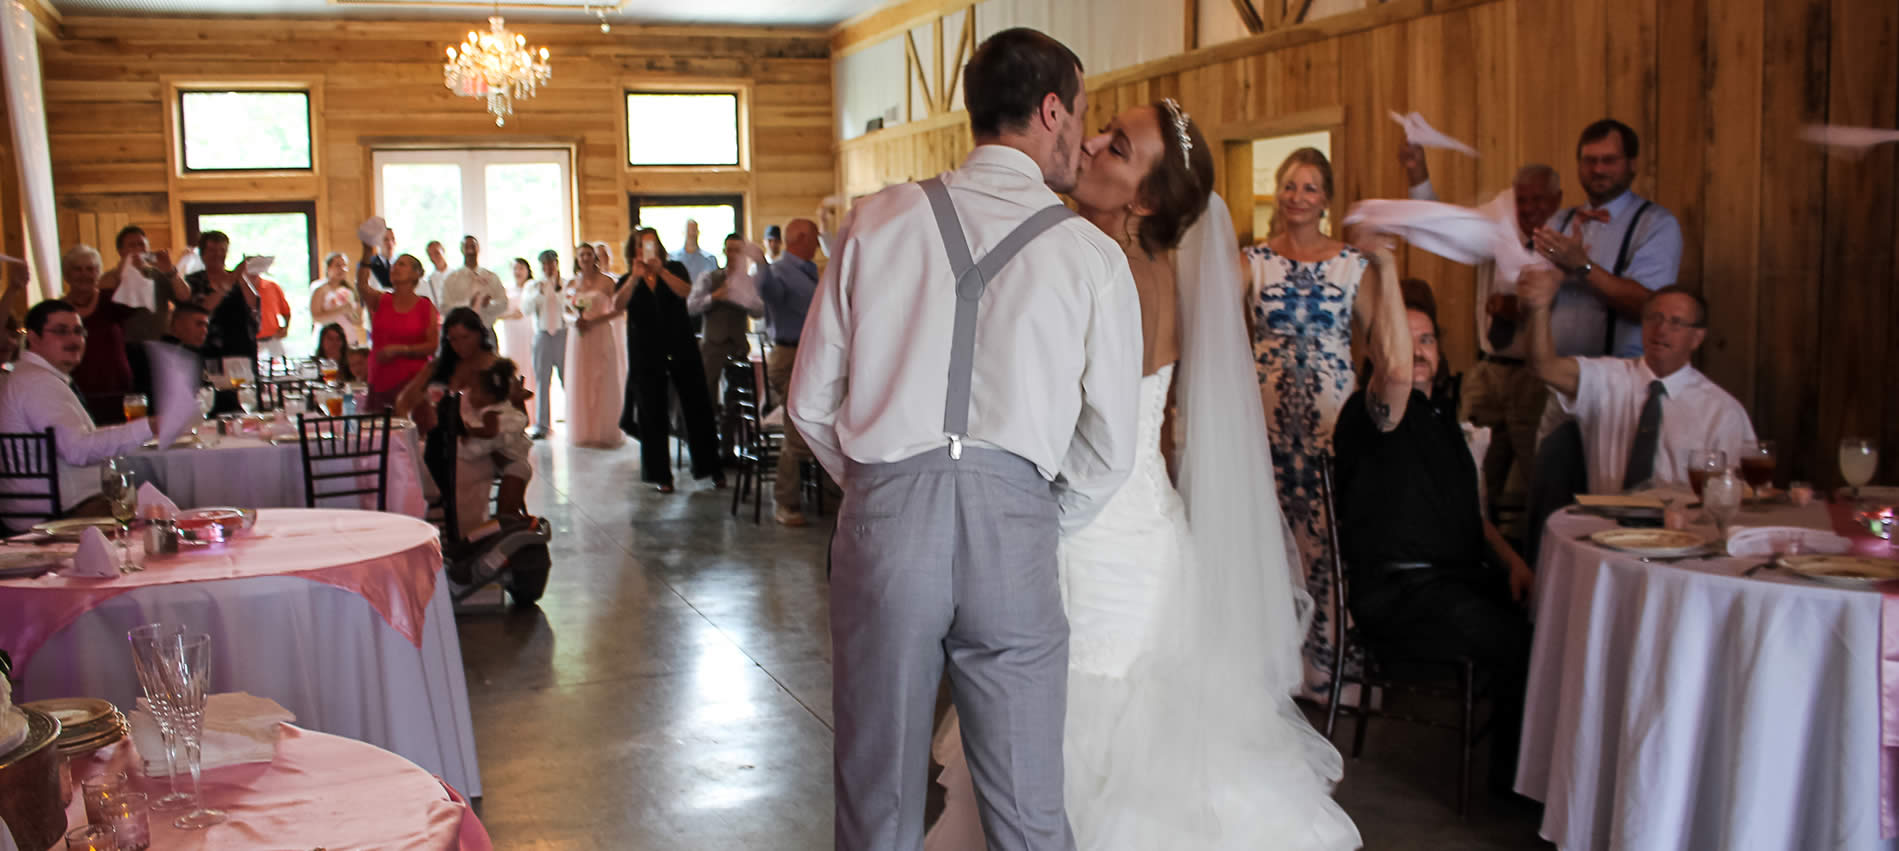 weddings and recpetions at southern grace bed and breakfast in kentucky